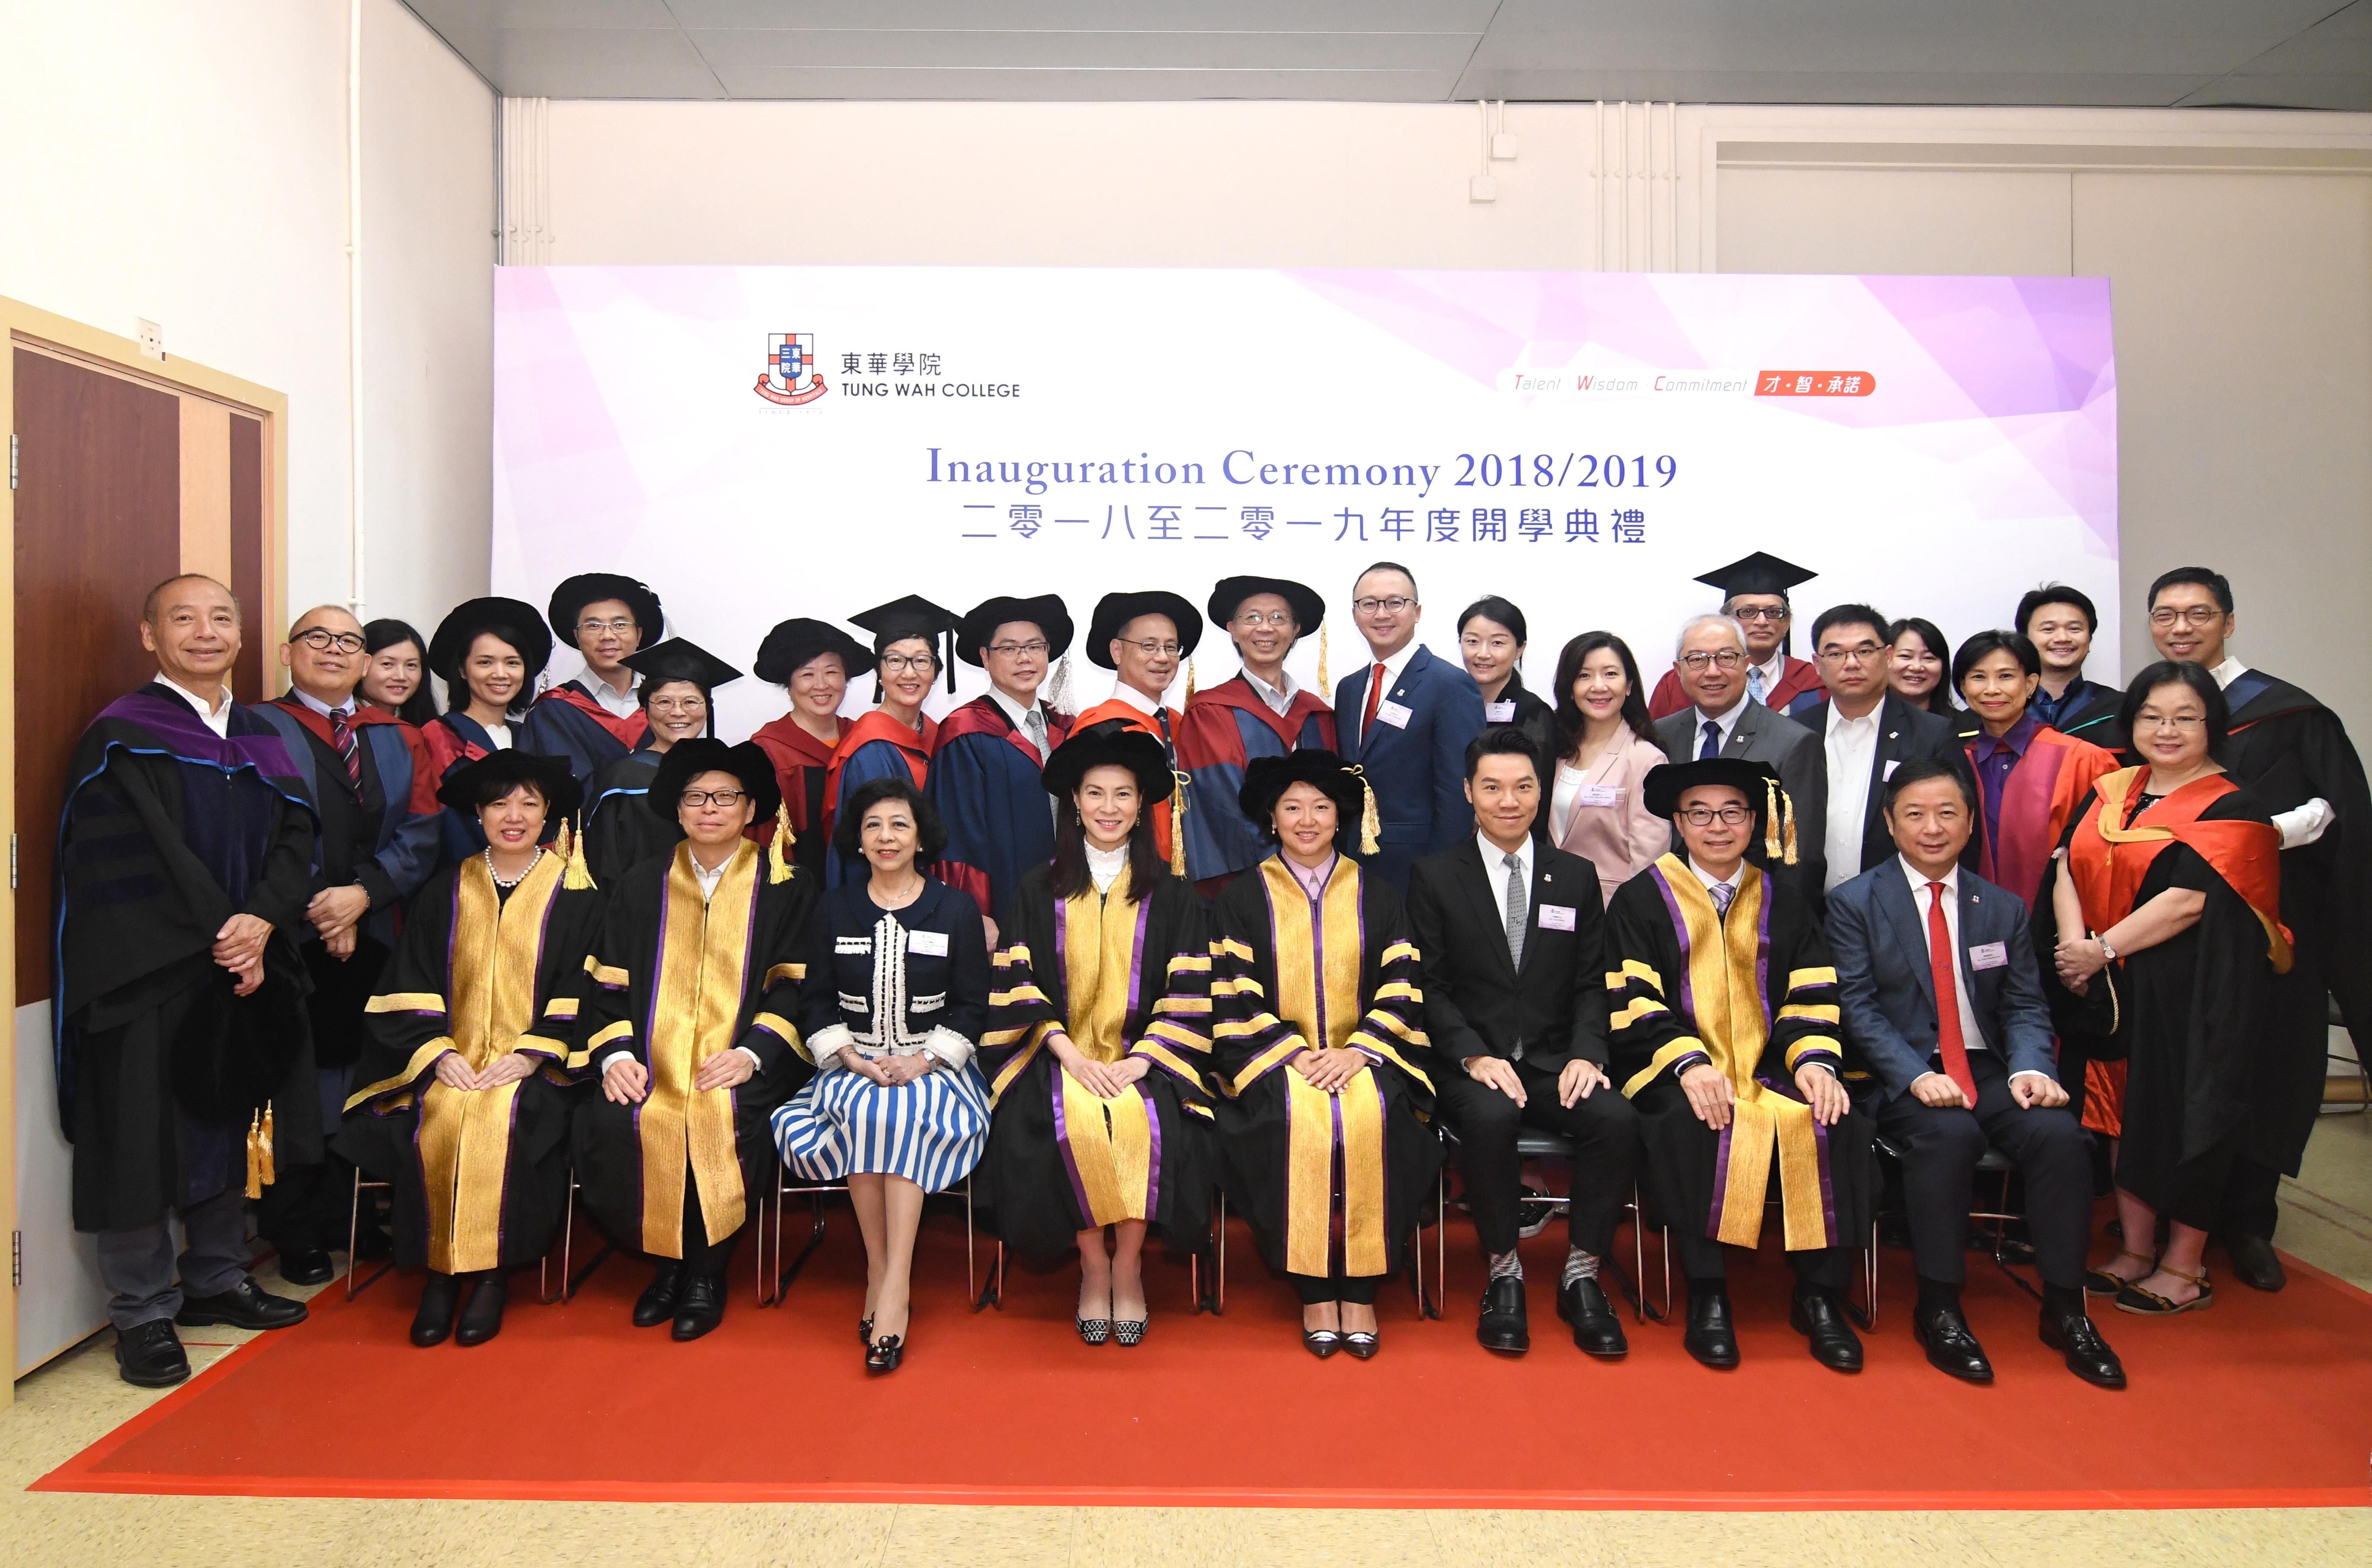 Tung Wah College Inauguration Ceremony 2018/2019